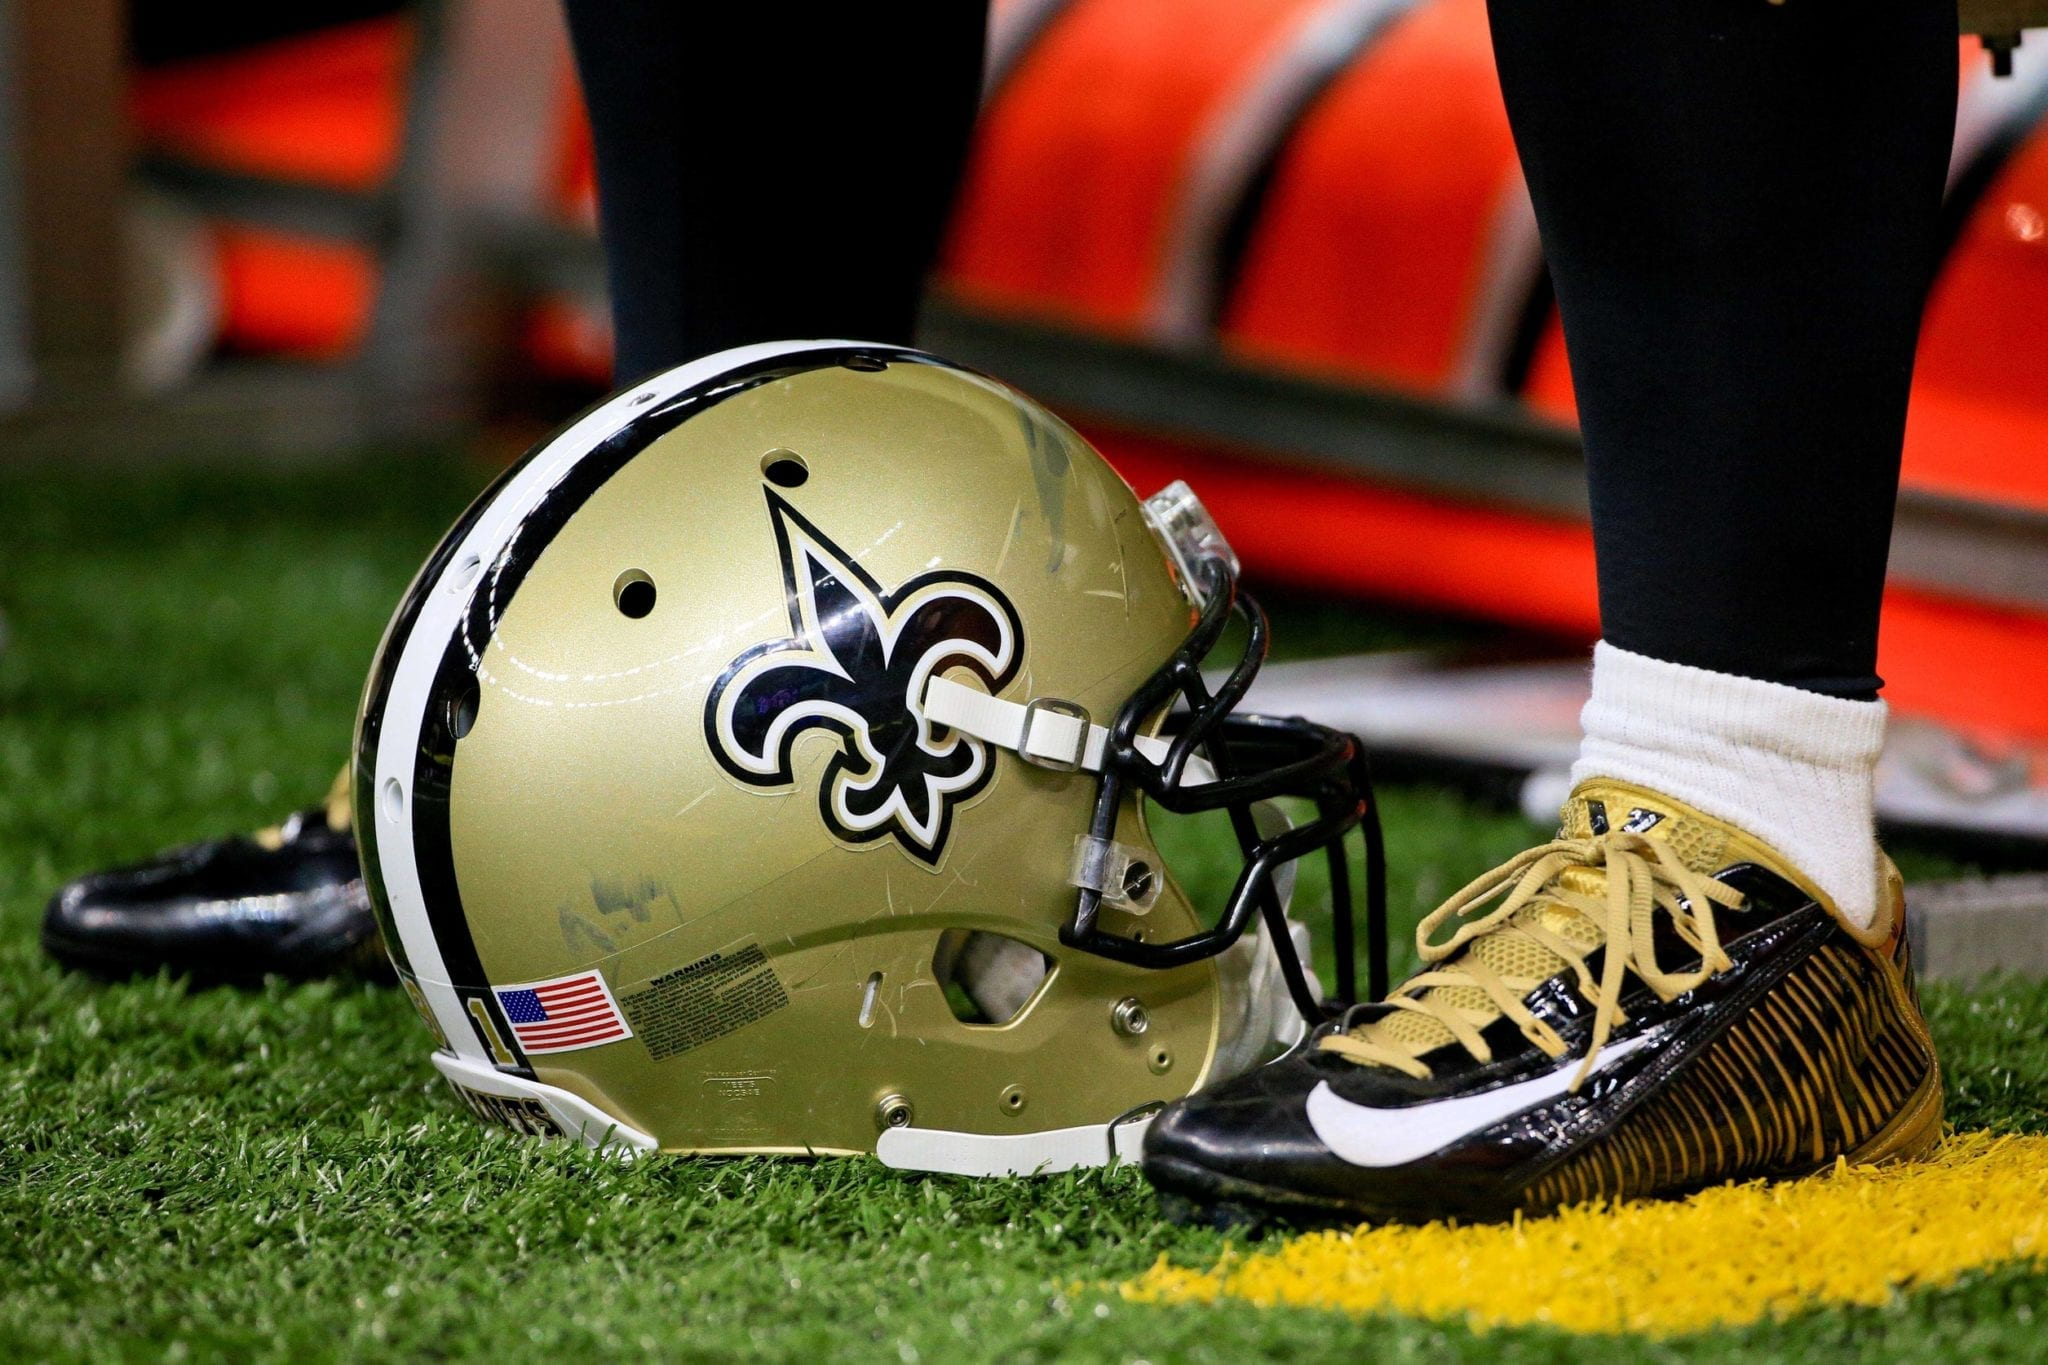 Saints Helmet